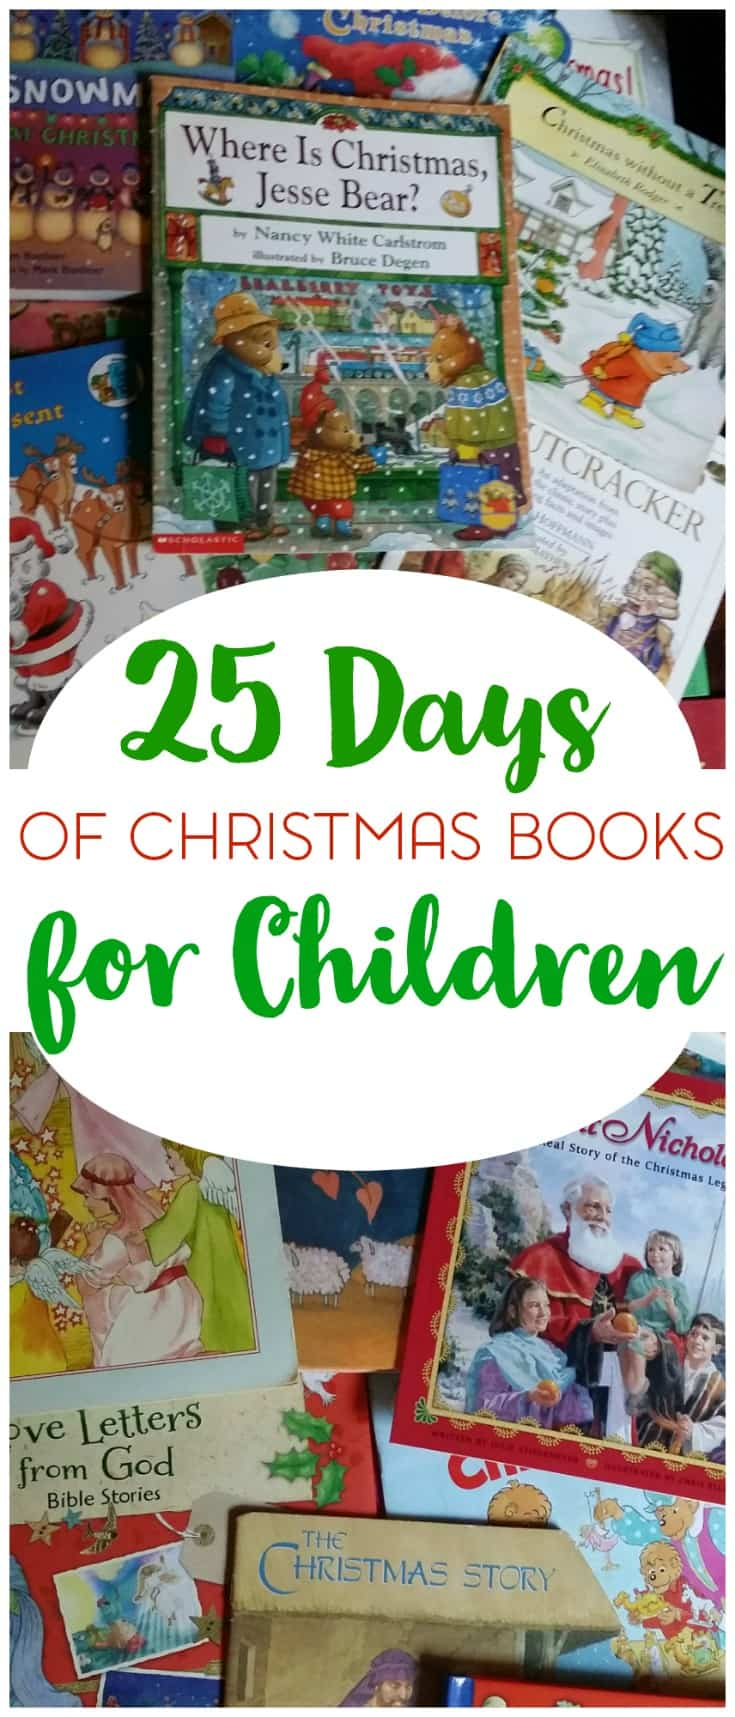 We are counting down until Christmas! Featuring 25 days packed with Christmas books, crafts, activities, and recipes; you are sure to get into the Christmas spirit with this family friendly Christmas countdown.